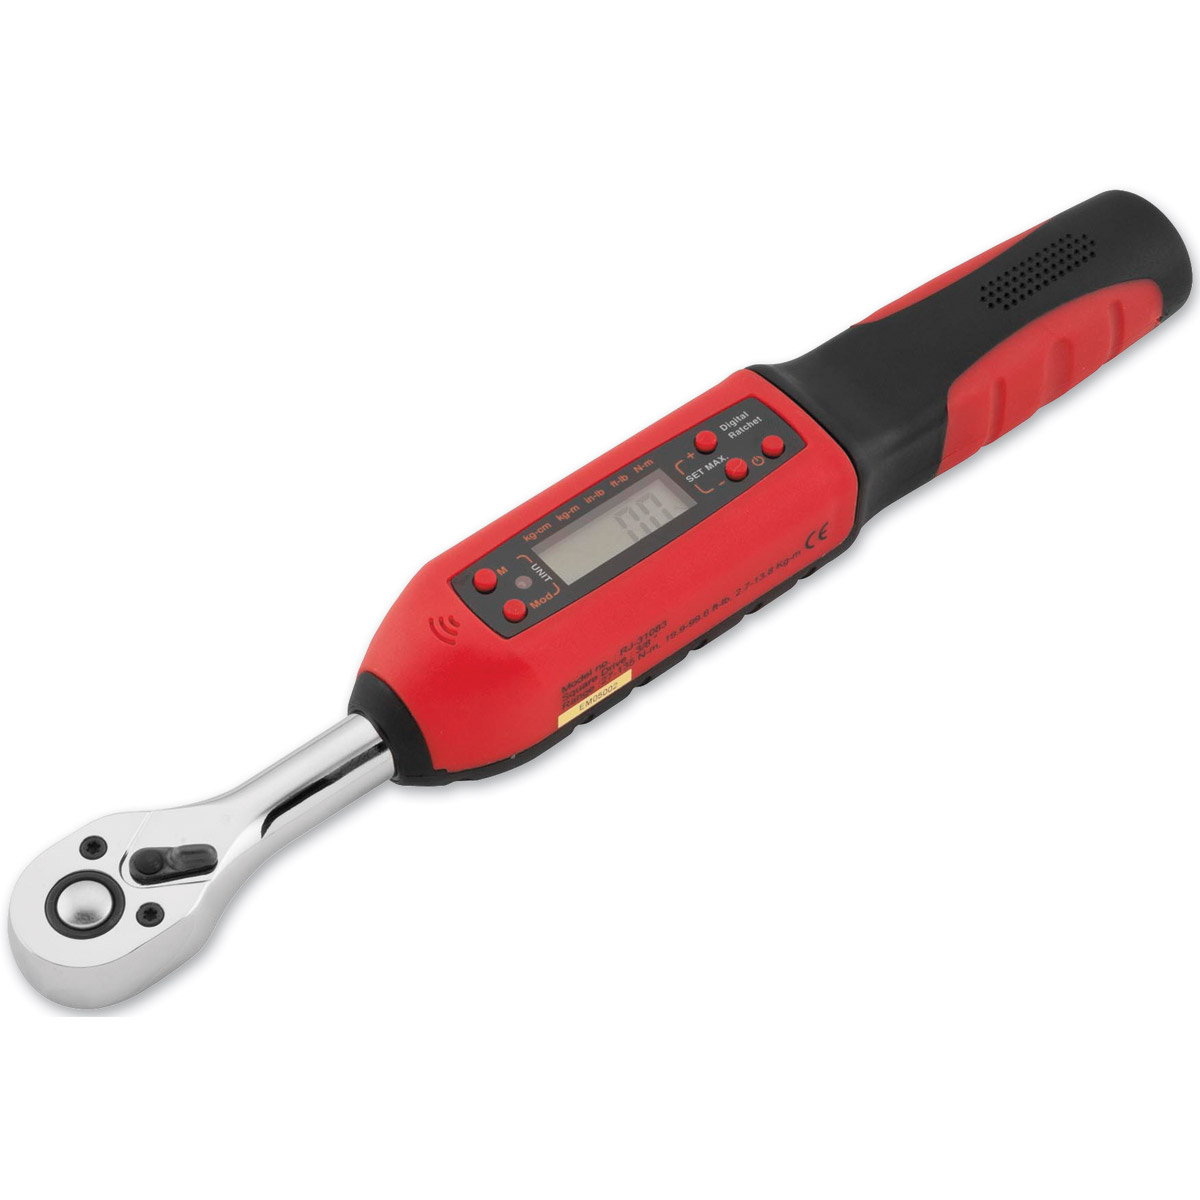 4 Type Of Torque Wrenches